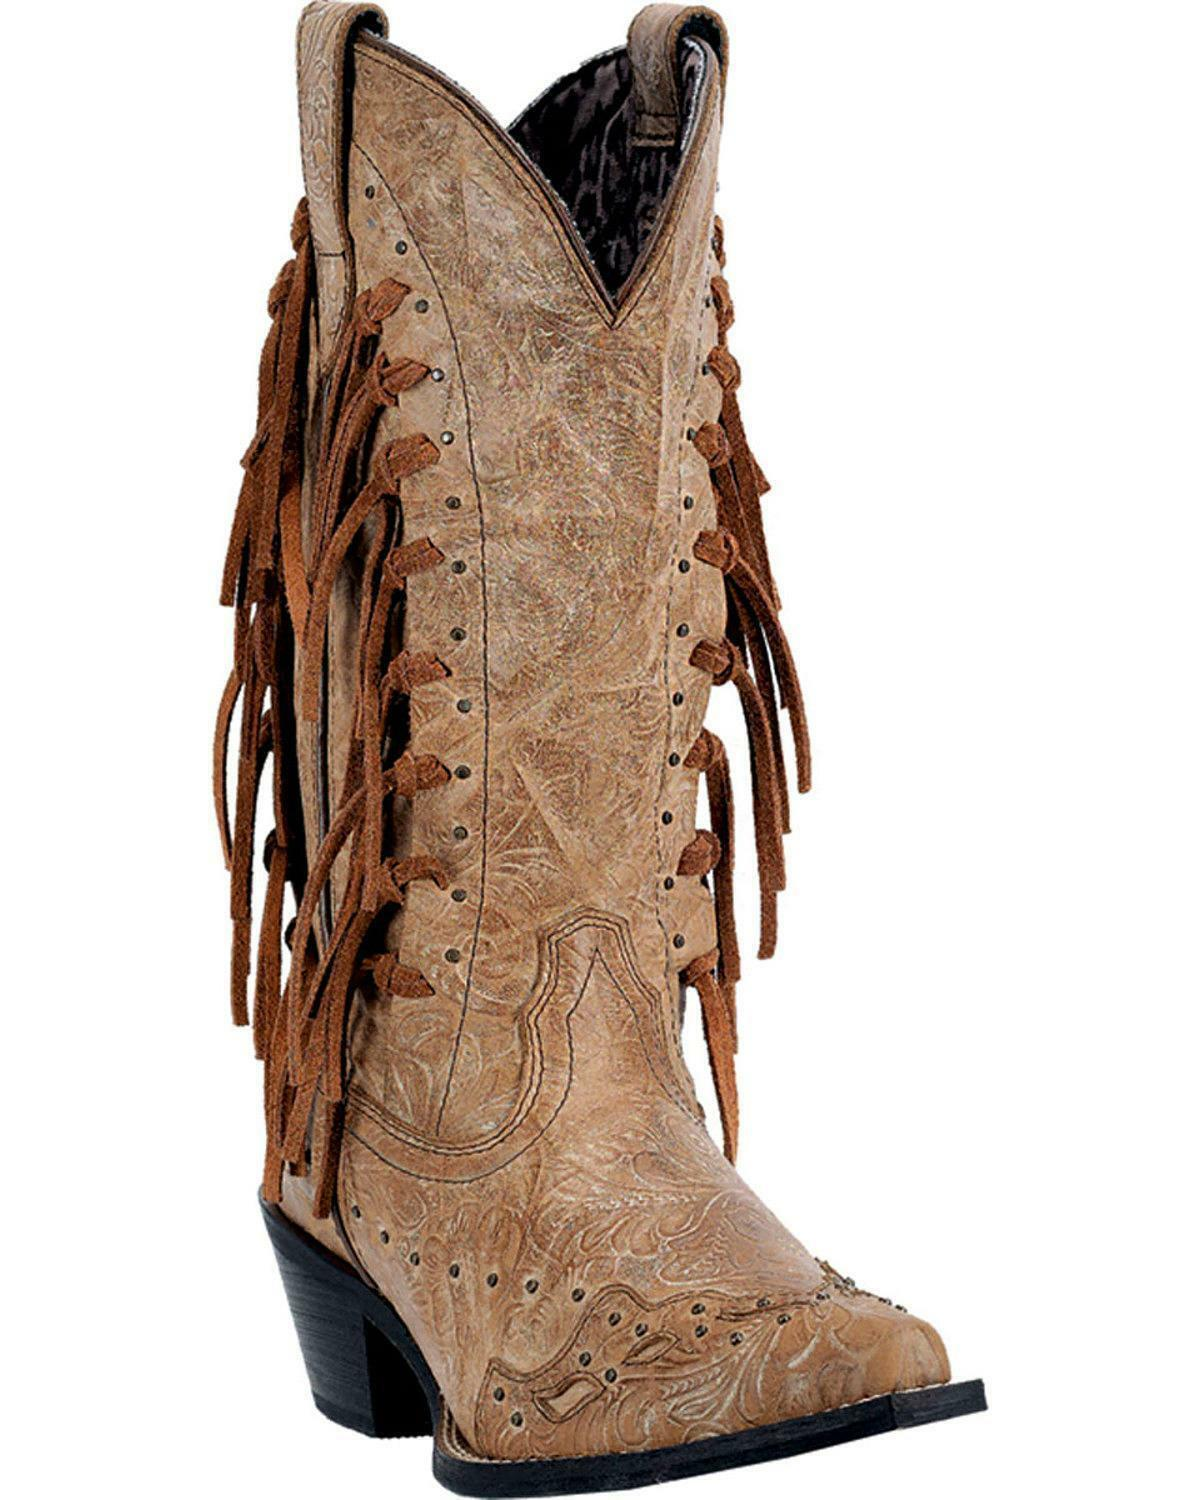 LADIES LAREDO TYGRESS FRINGE WESTERN BOOTS 52031 SNIP TOE